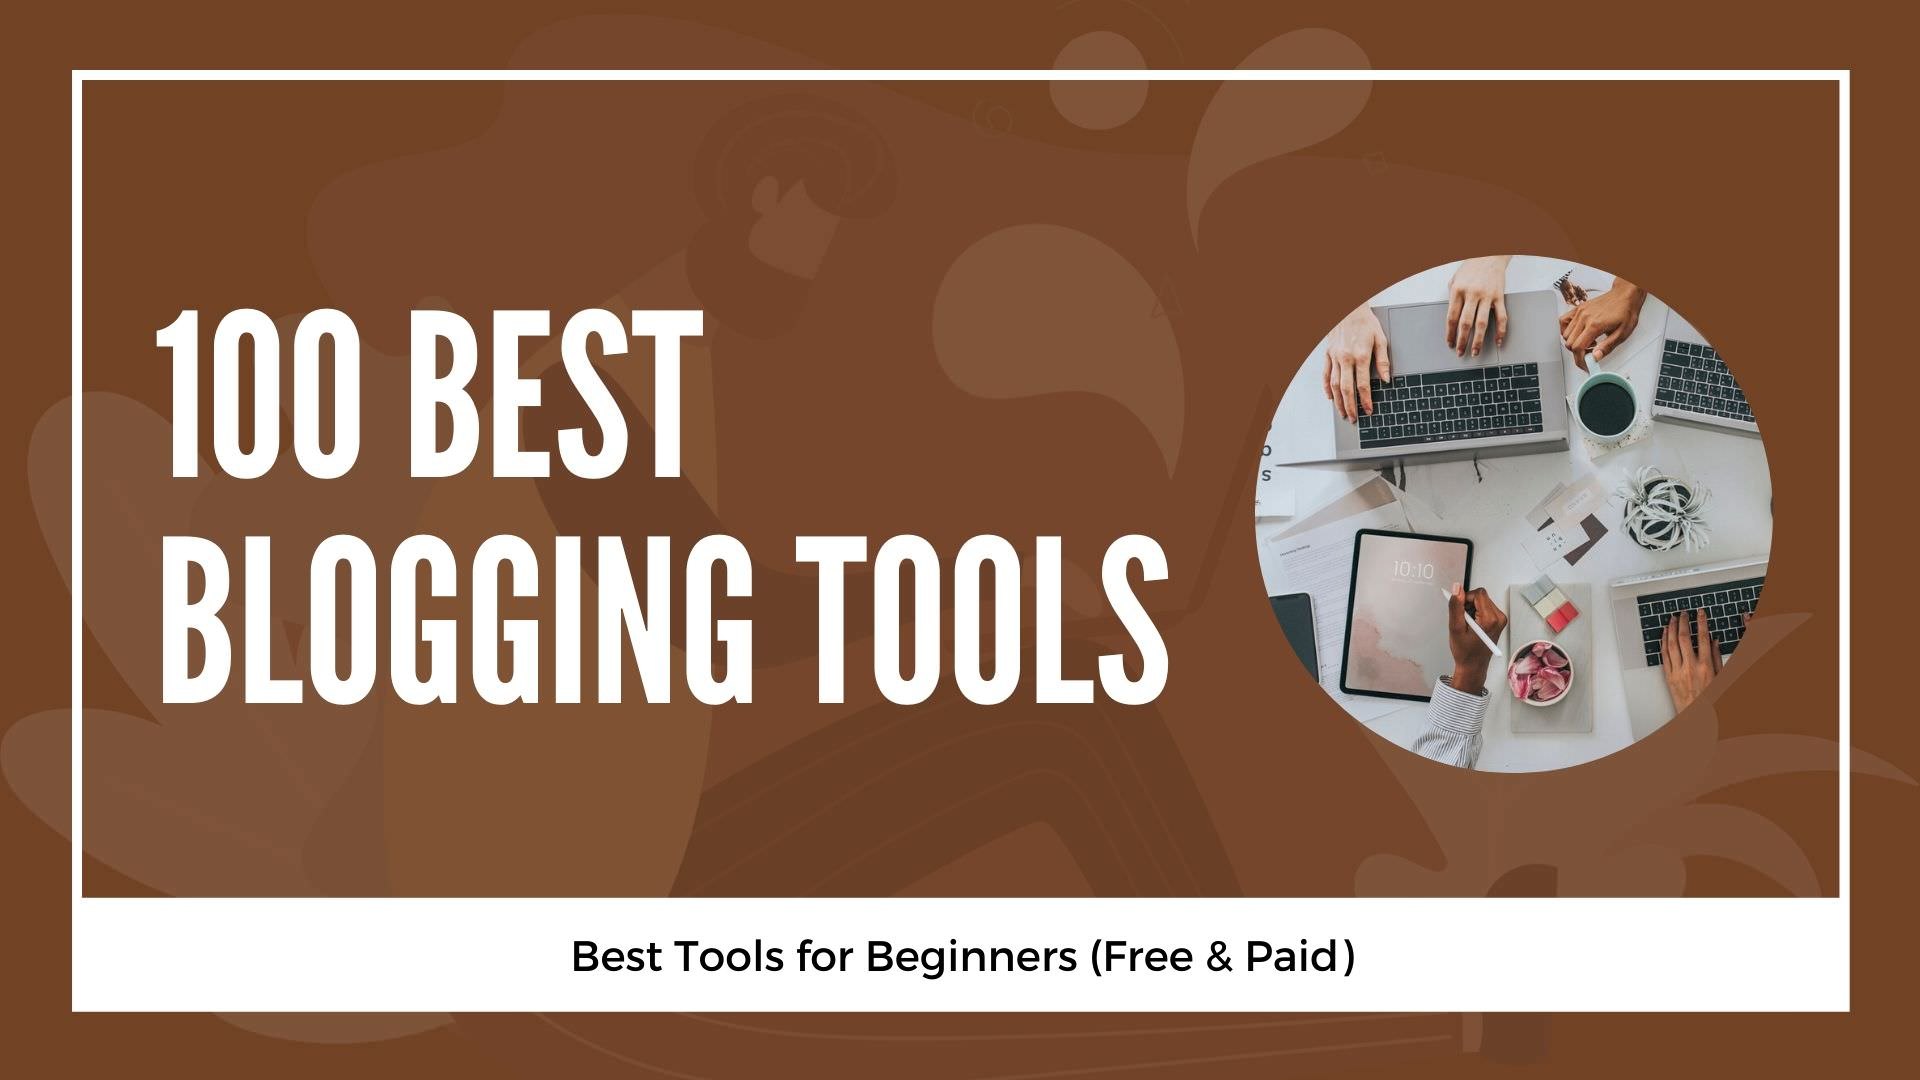 100 Best Blogging Tools for Beginners (Free & Paid)